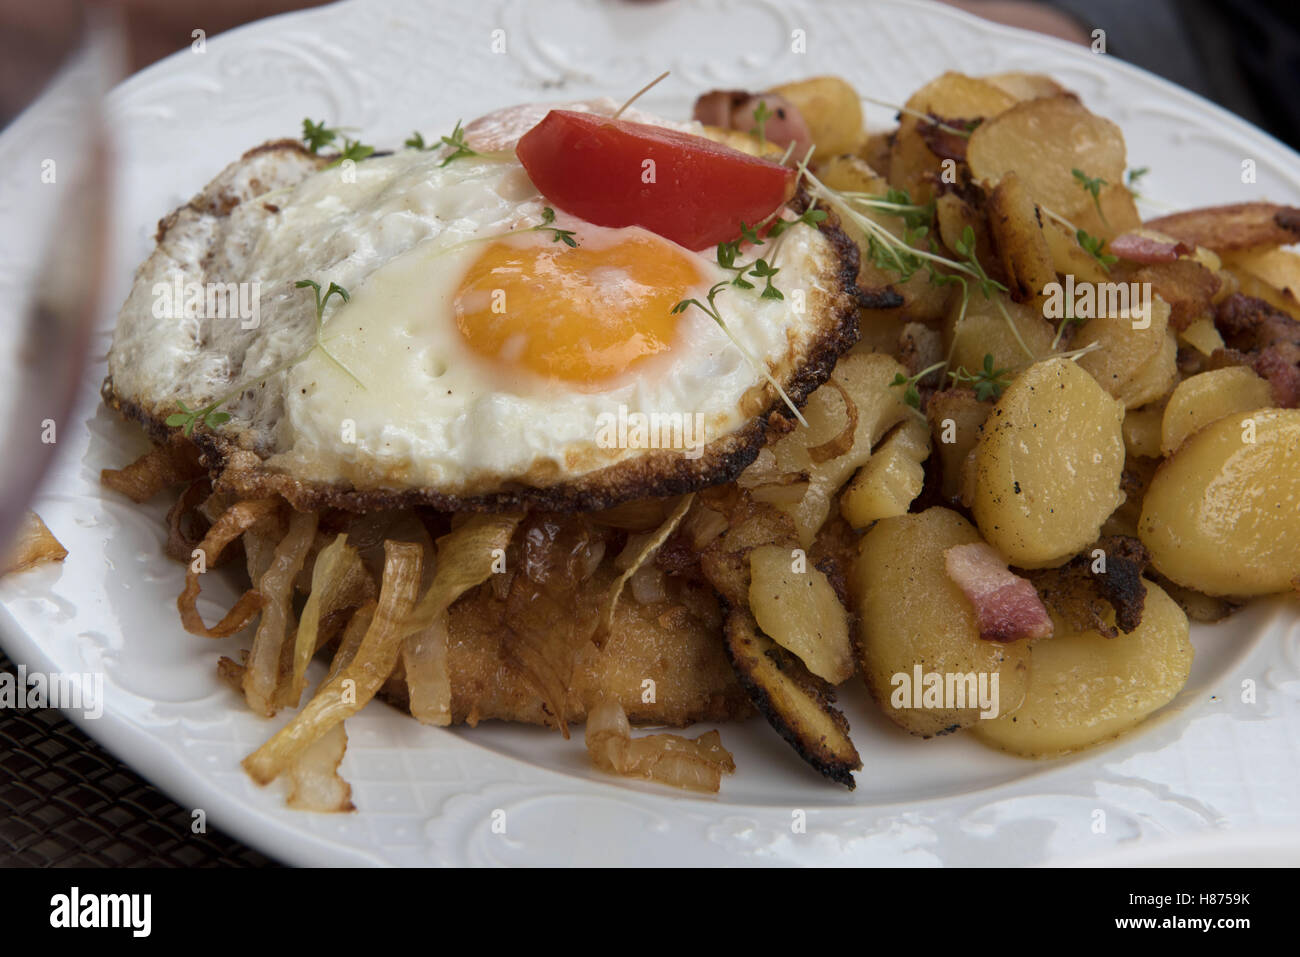 Food on a plate in Germany. Sept 2016. Hearty food in Hillesheim, Germany. - Stock Image